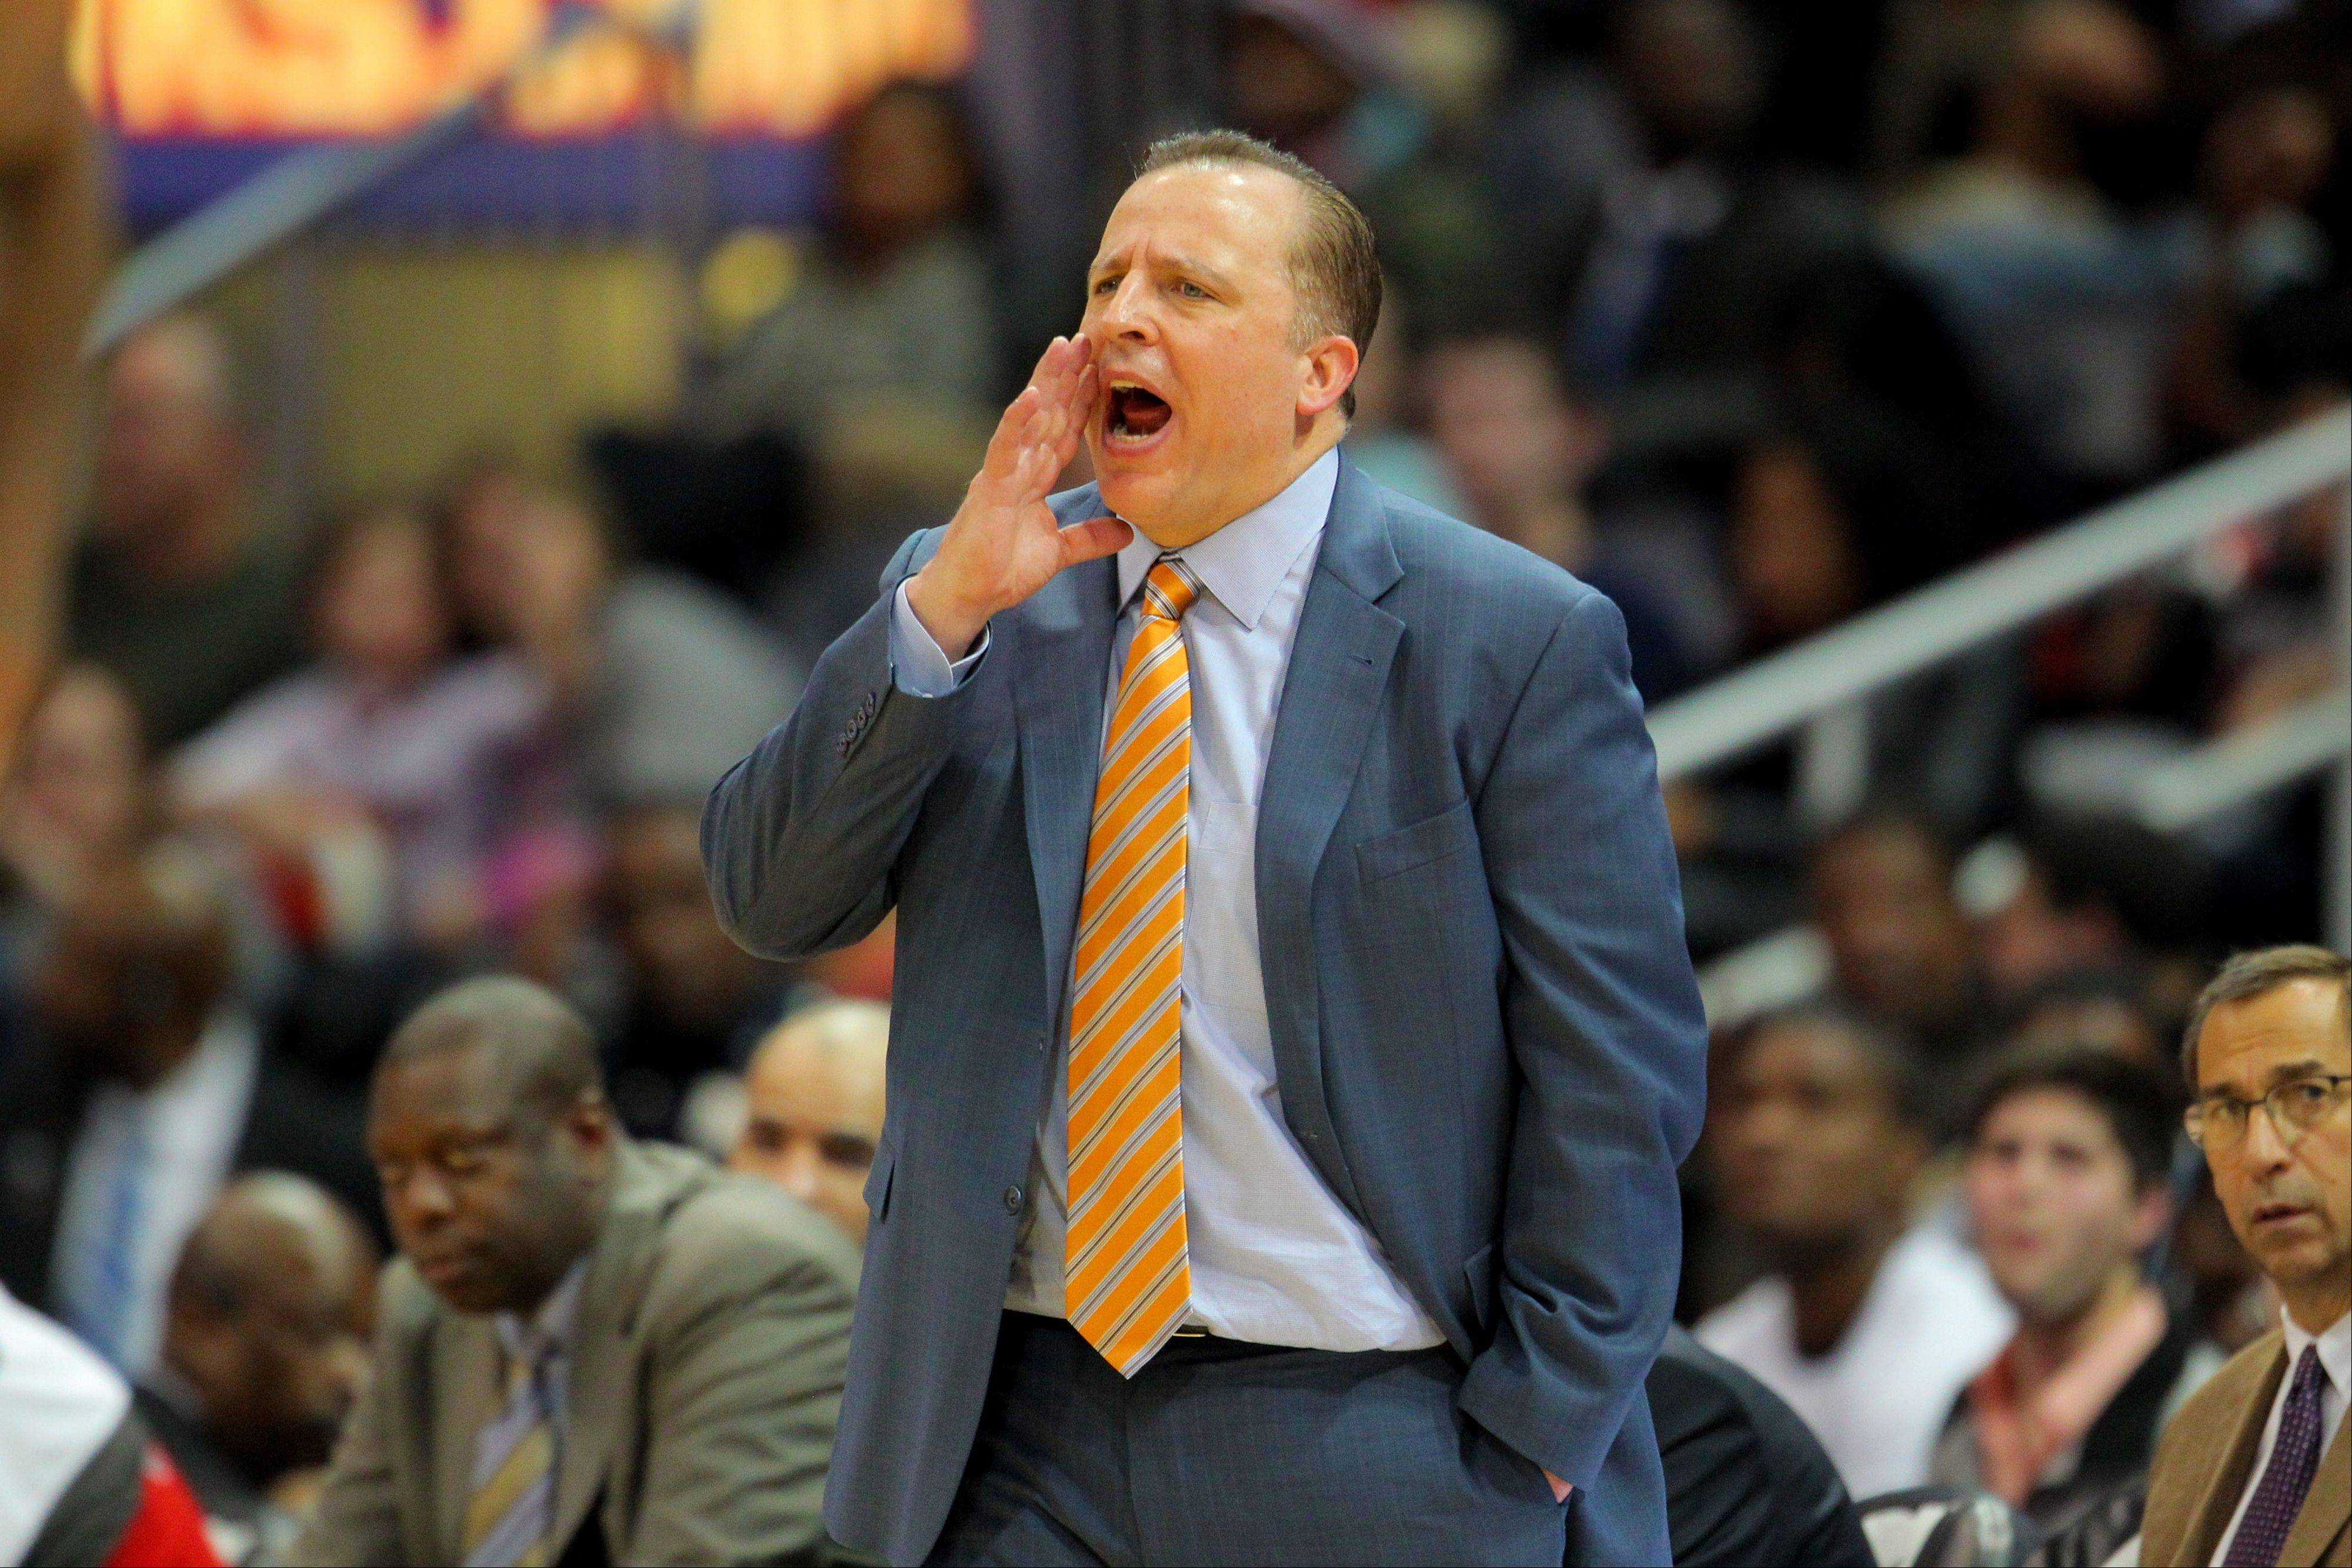 Here's hoping for fans that Tom Thibodeau is just starting a long, successful run as coach of the Bulls.